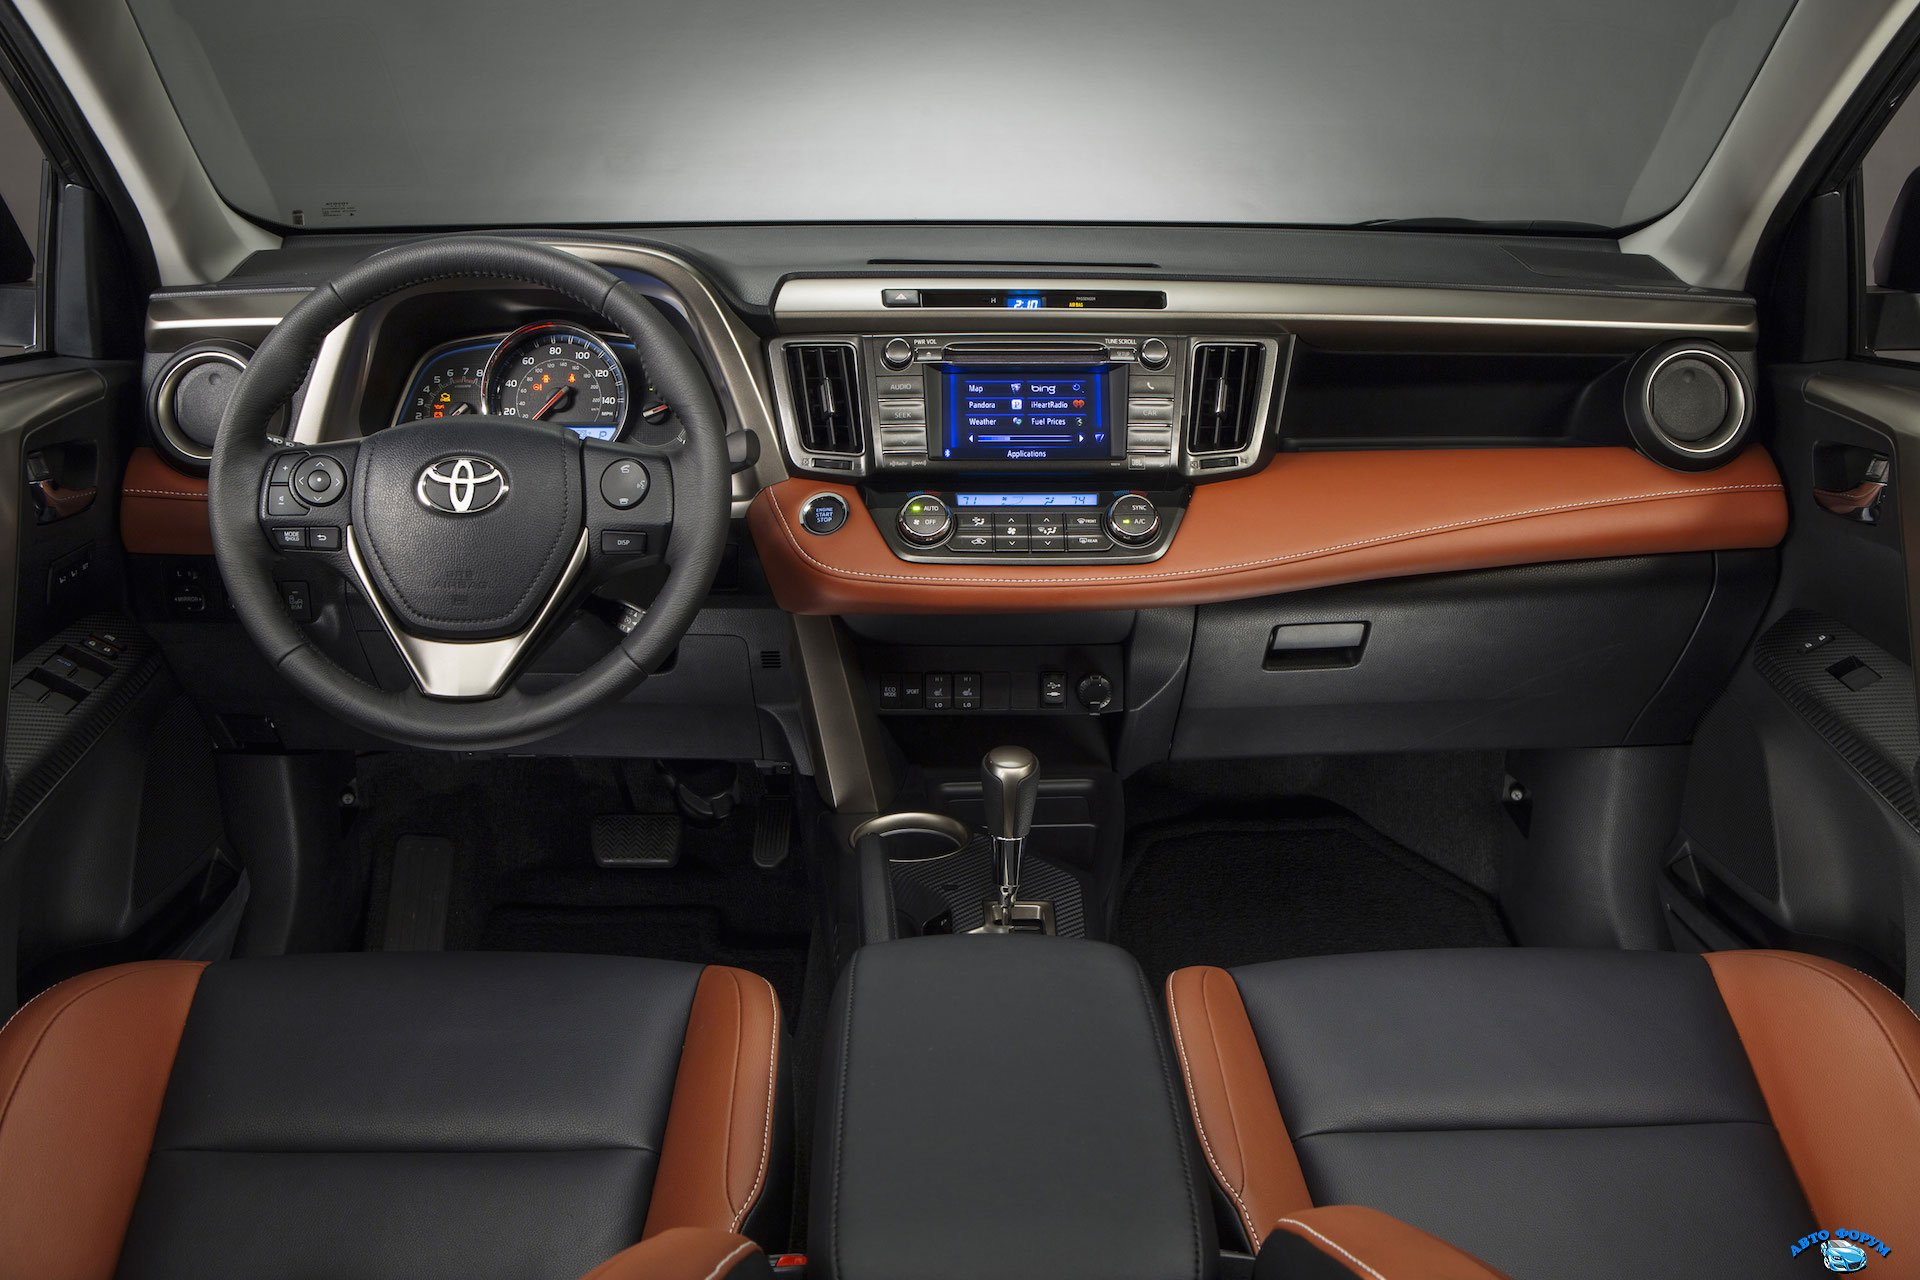 toyota Certified pre-owned toyotas - find the best deals on used toyota cars, trucks, suvs & hybrids and discover the advantages of choosing toyota pre-owned cars.